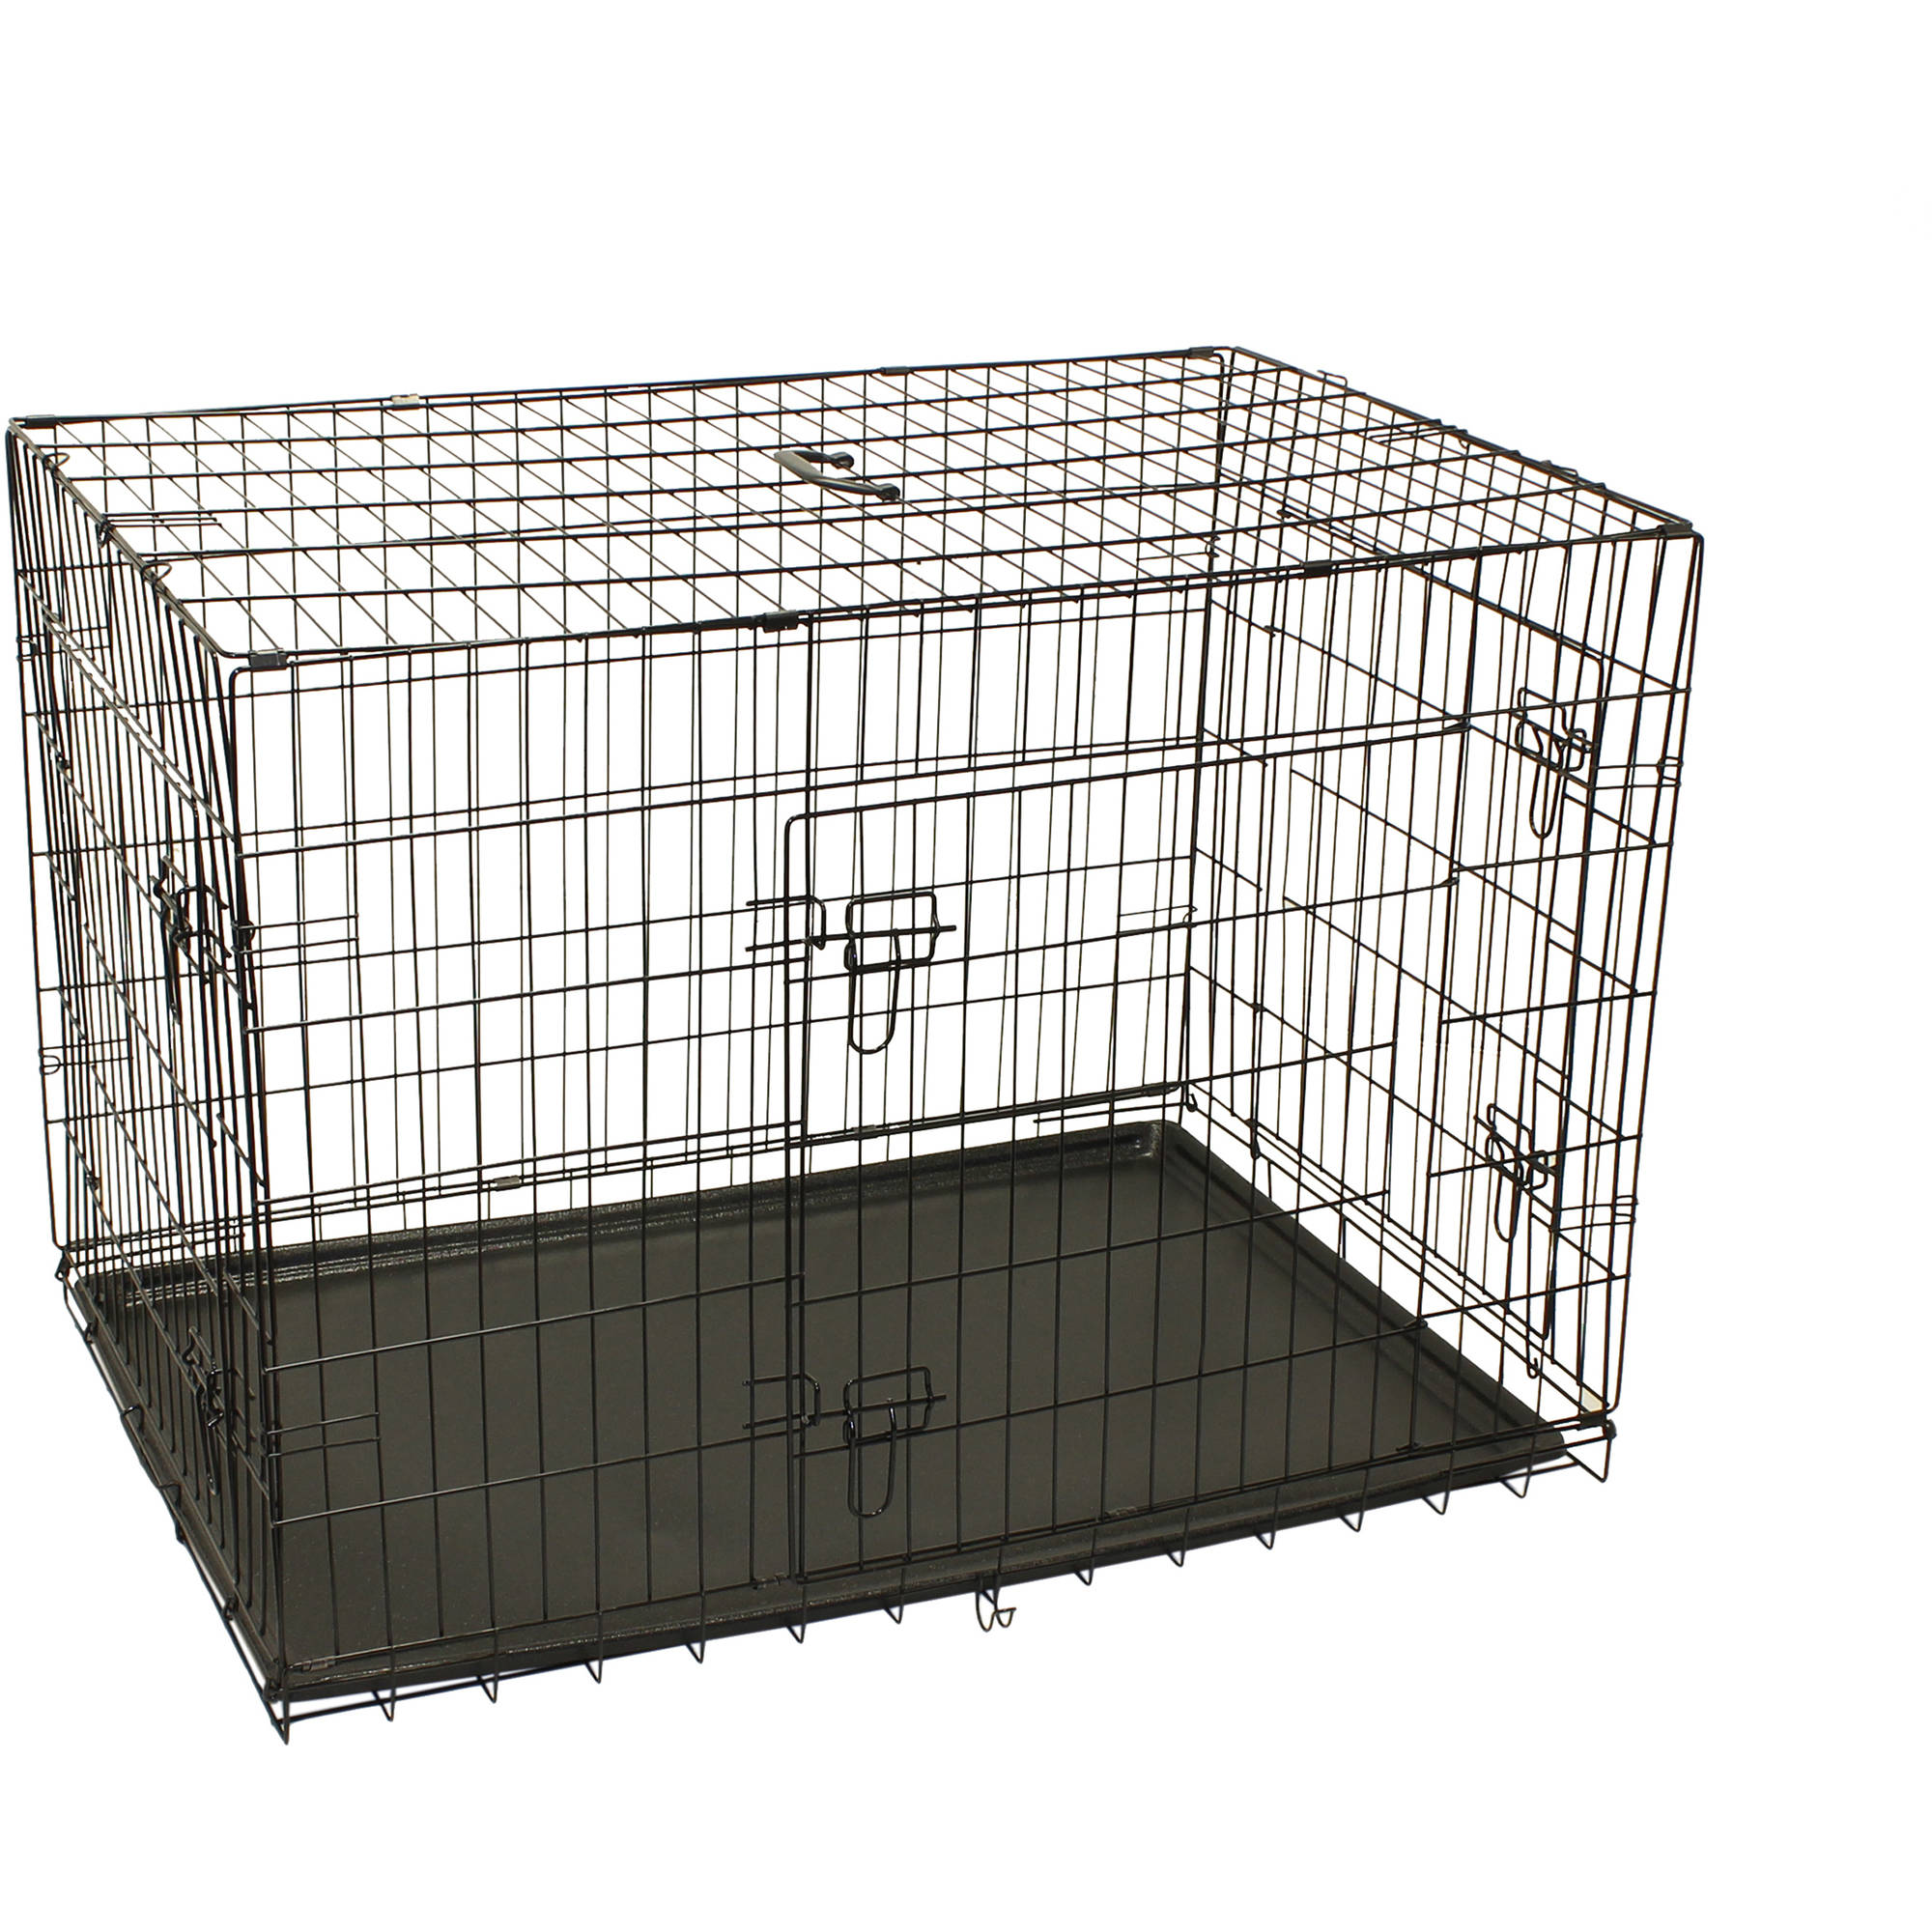 Aleko SDC-3D-42B 3-Door Dog Crate Cage